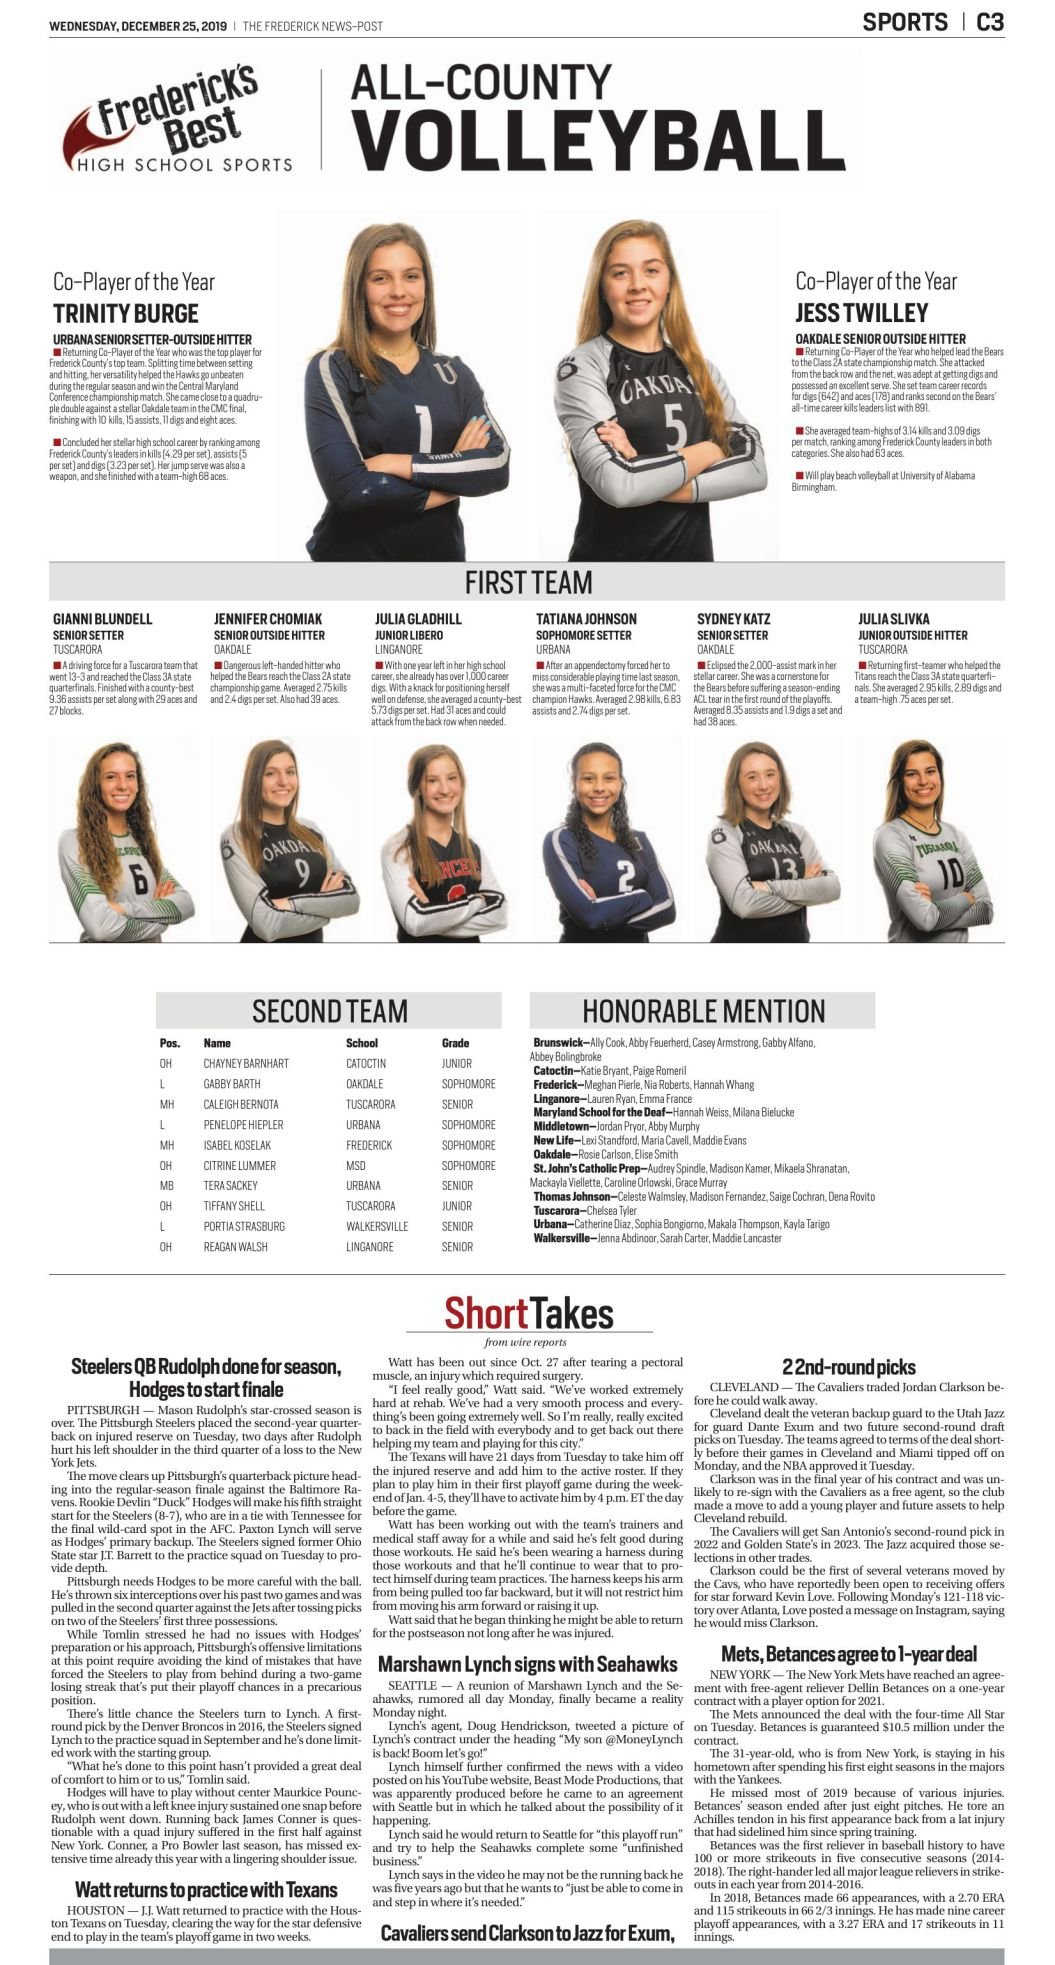 2019 All-County Volleyball